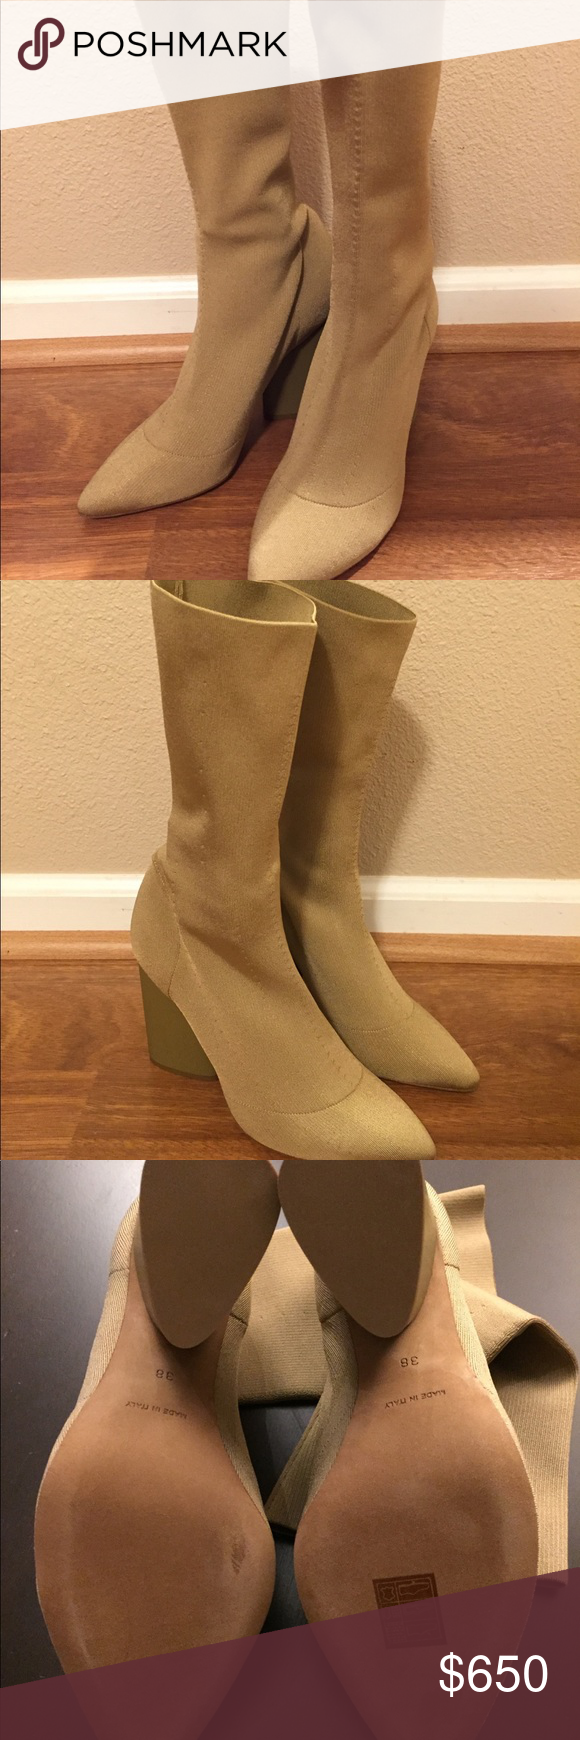 06beec1f86bce Yeezy Season 4 Low Knit Calf Boot - ochre New with box and dust bag! Color green  ochre. Appears more tan in person. Size 38. Yeezy Shoes Ankle Boots   ...